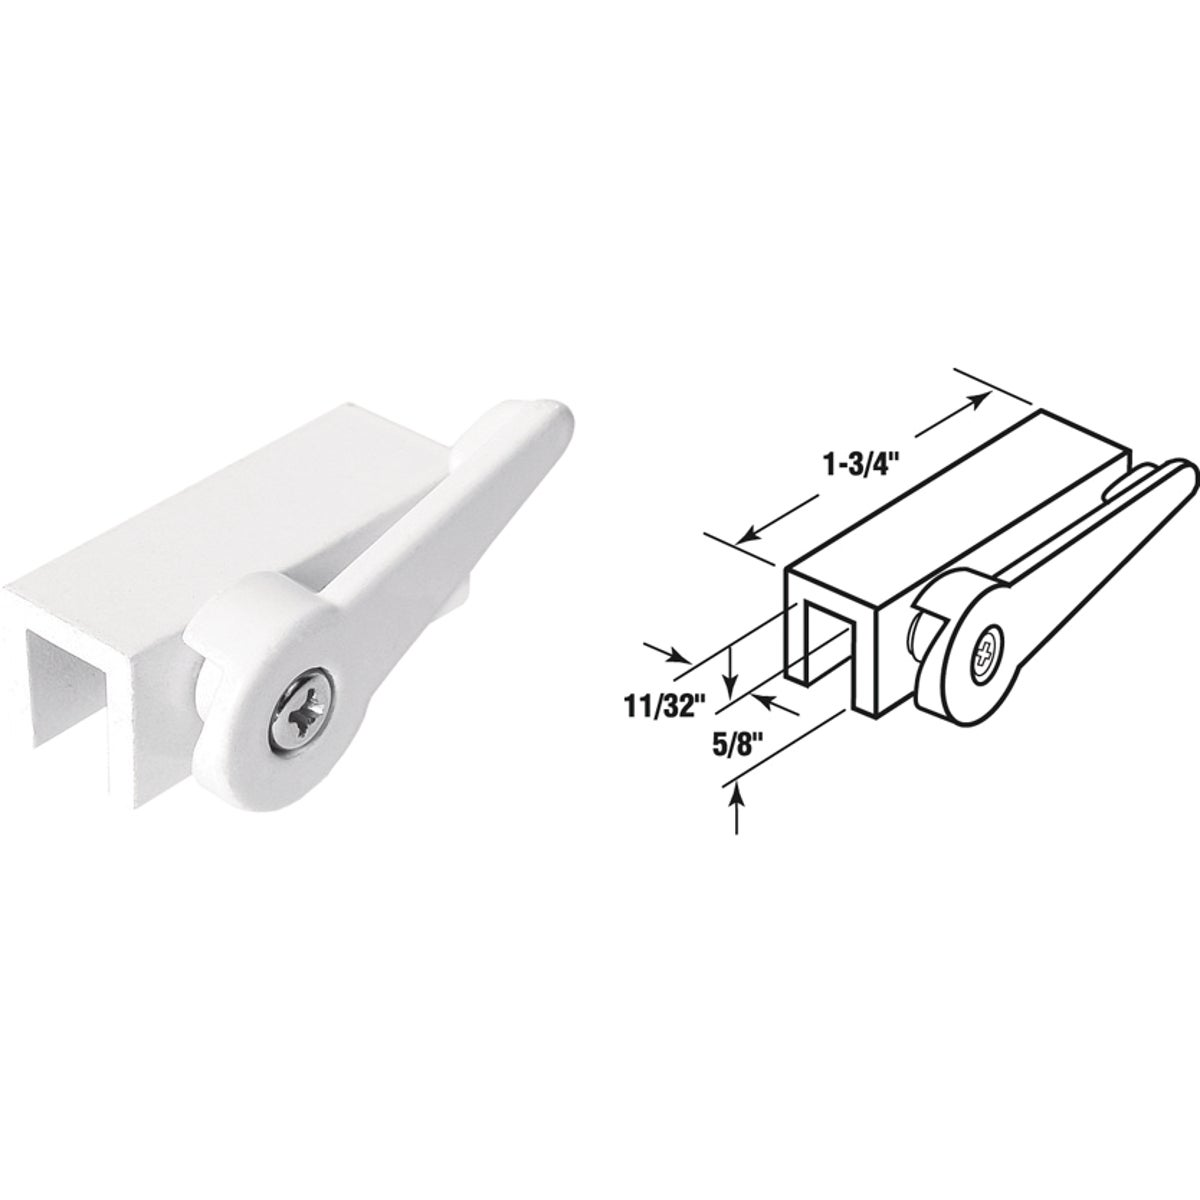 WHT LEVER WINDOW LOCK - U 9825 by Prime Line Products